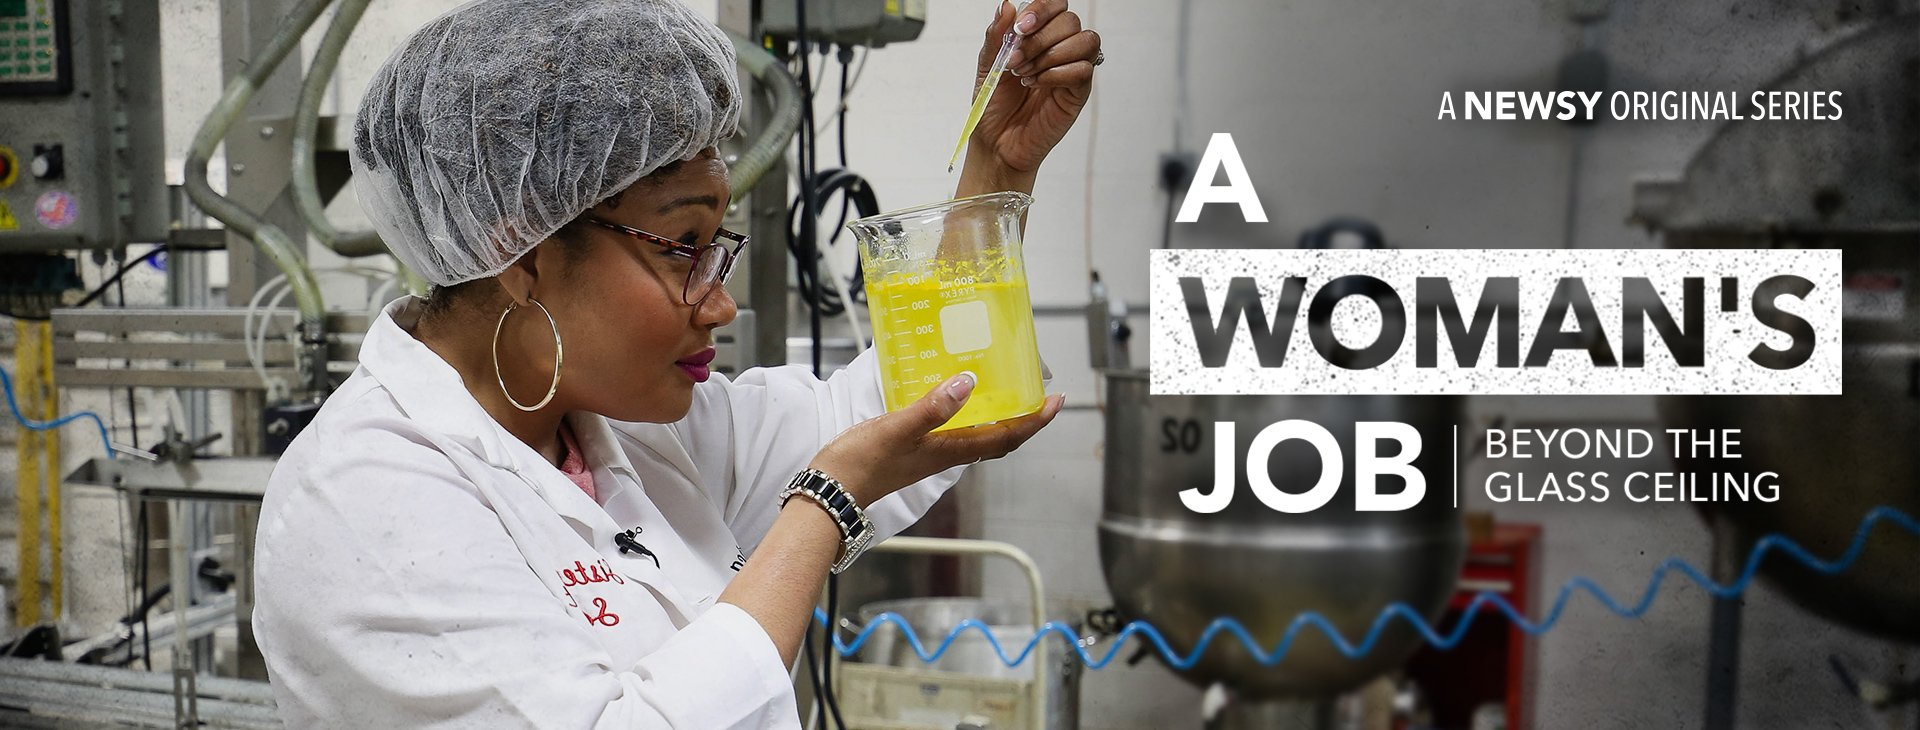 A Woman's Job: Beyond the Glass Ceiling